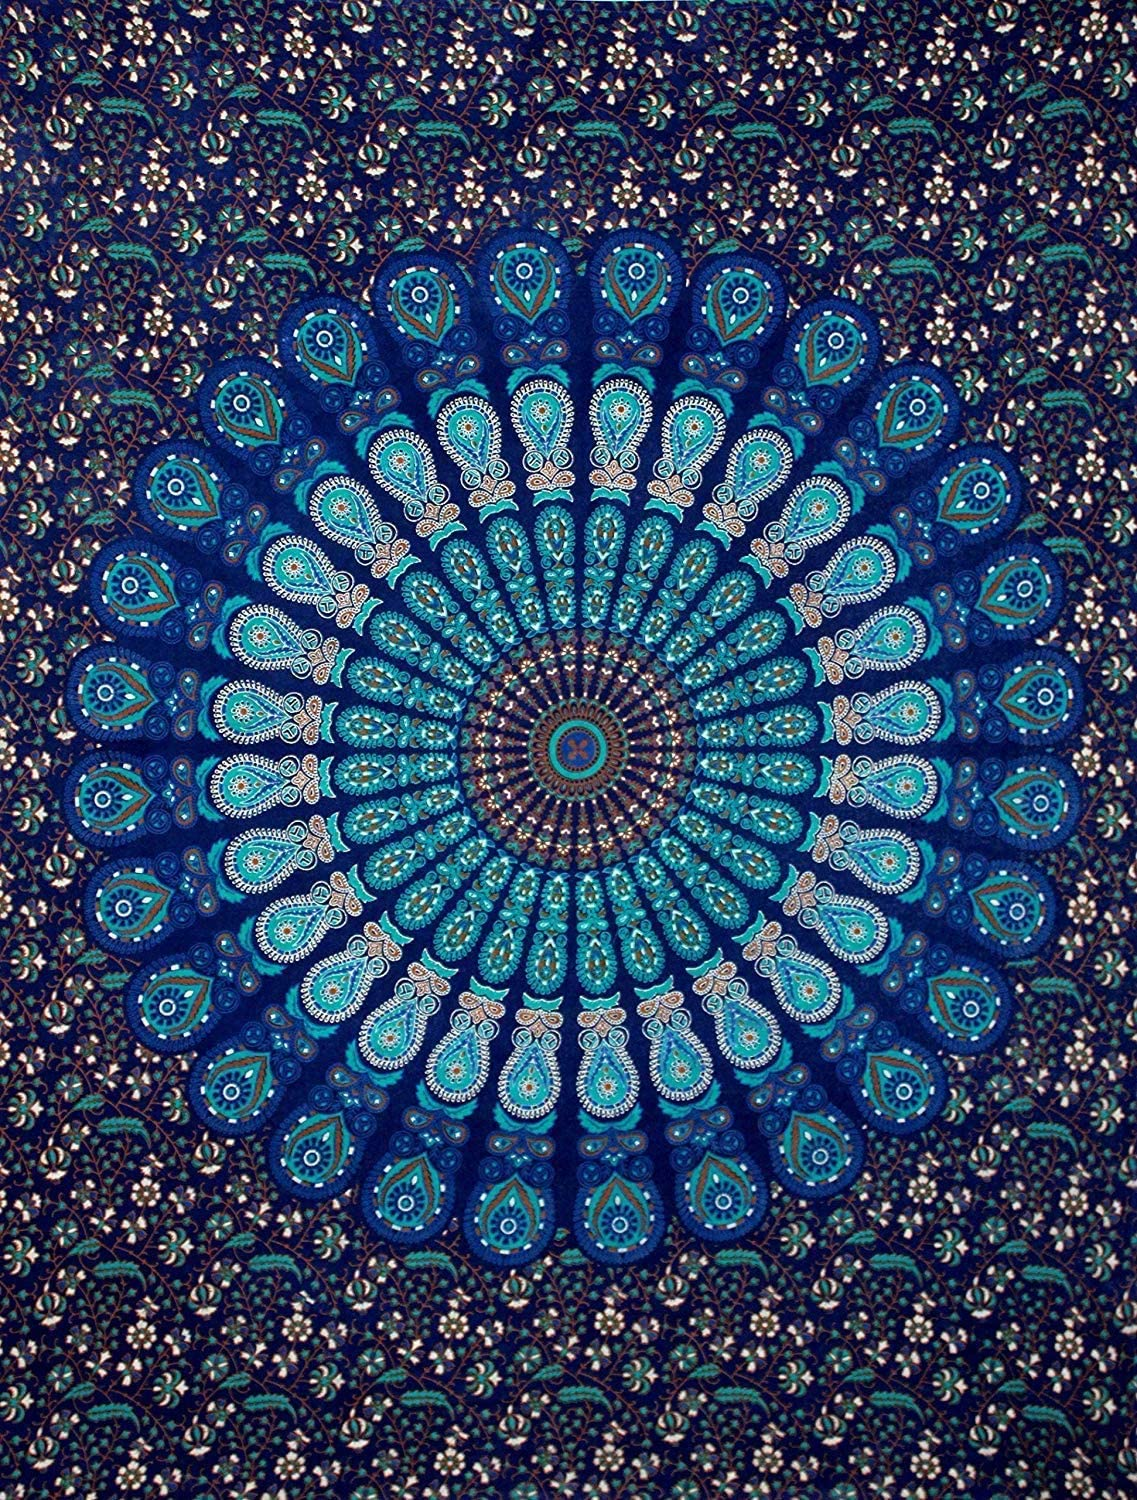 THRIVING Indian Mandala Tapestry Peacock Feather Handmade Cotton Wall Hanging Beach Blanket Throws Hippie Tapestries Yoga Mat Home Drom Decor Bedspread Bohemian Wall Decor Table,Sofa Cover